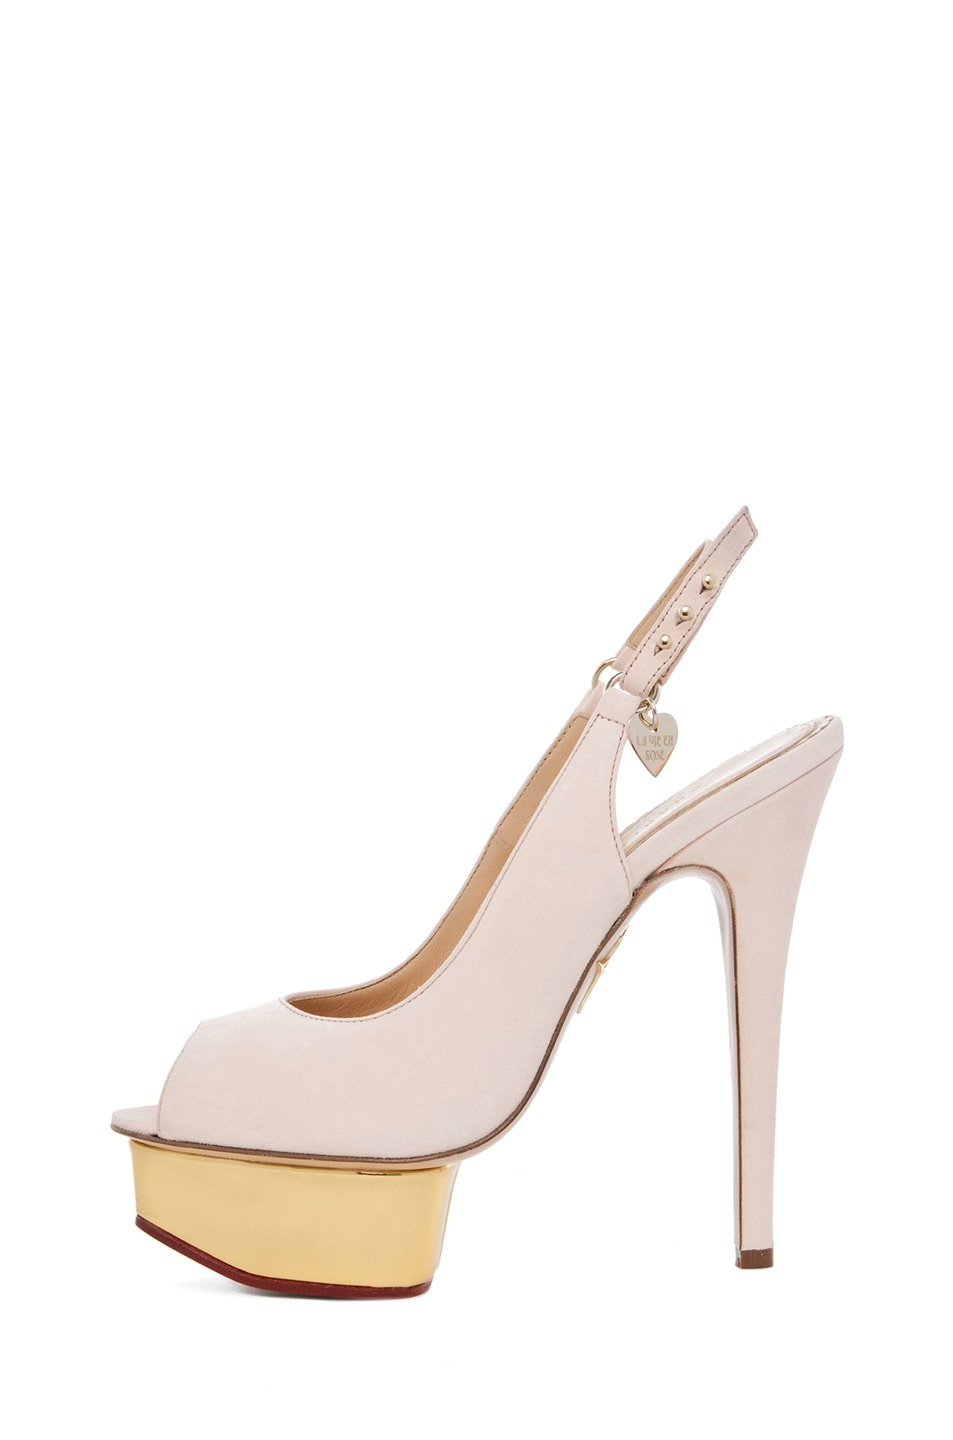 Image 1 of Charlotte Olympia Bon Bon Suede Sling Back Heels in Cipria